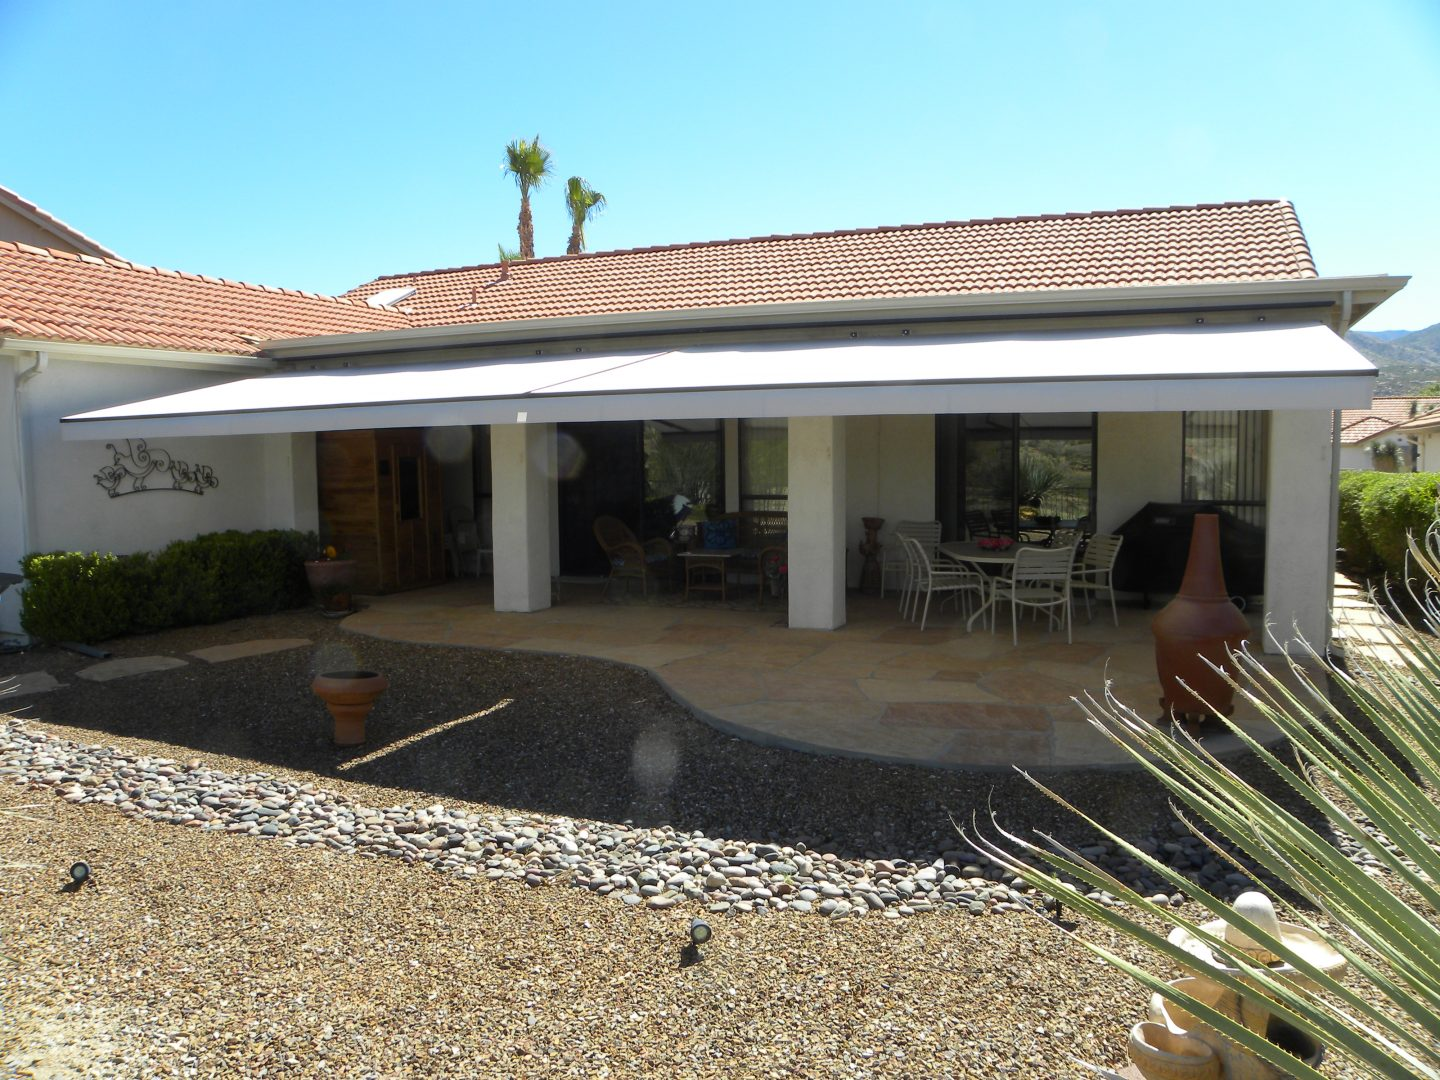 Tucson Residential Retractable Awnings - Air and Sun Shade ...